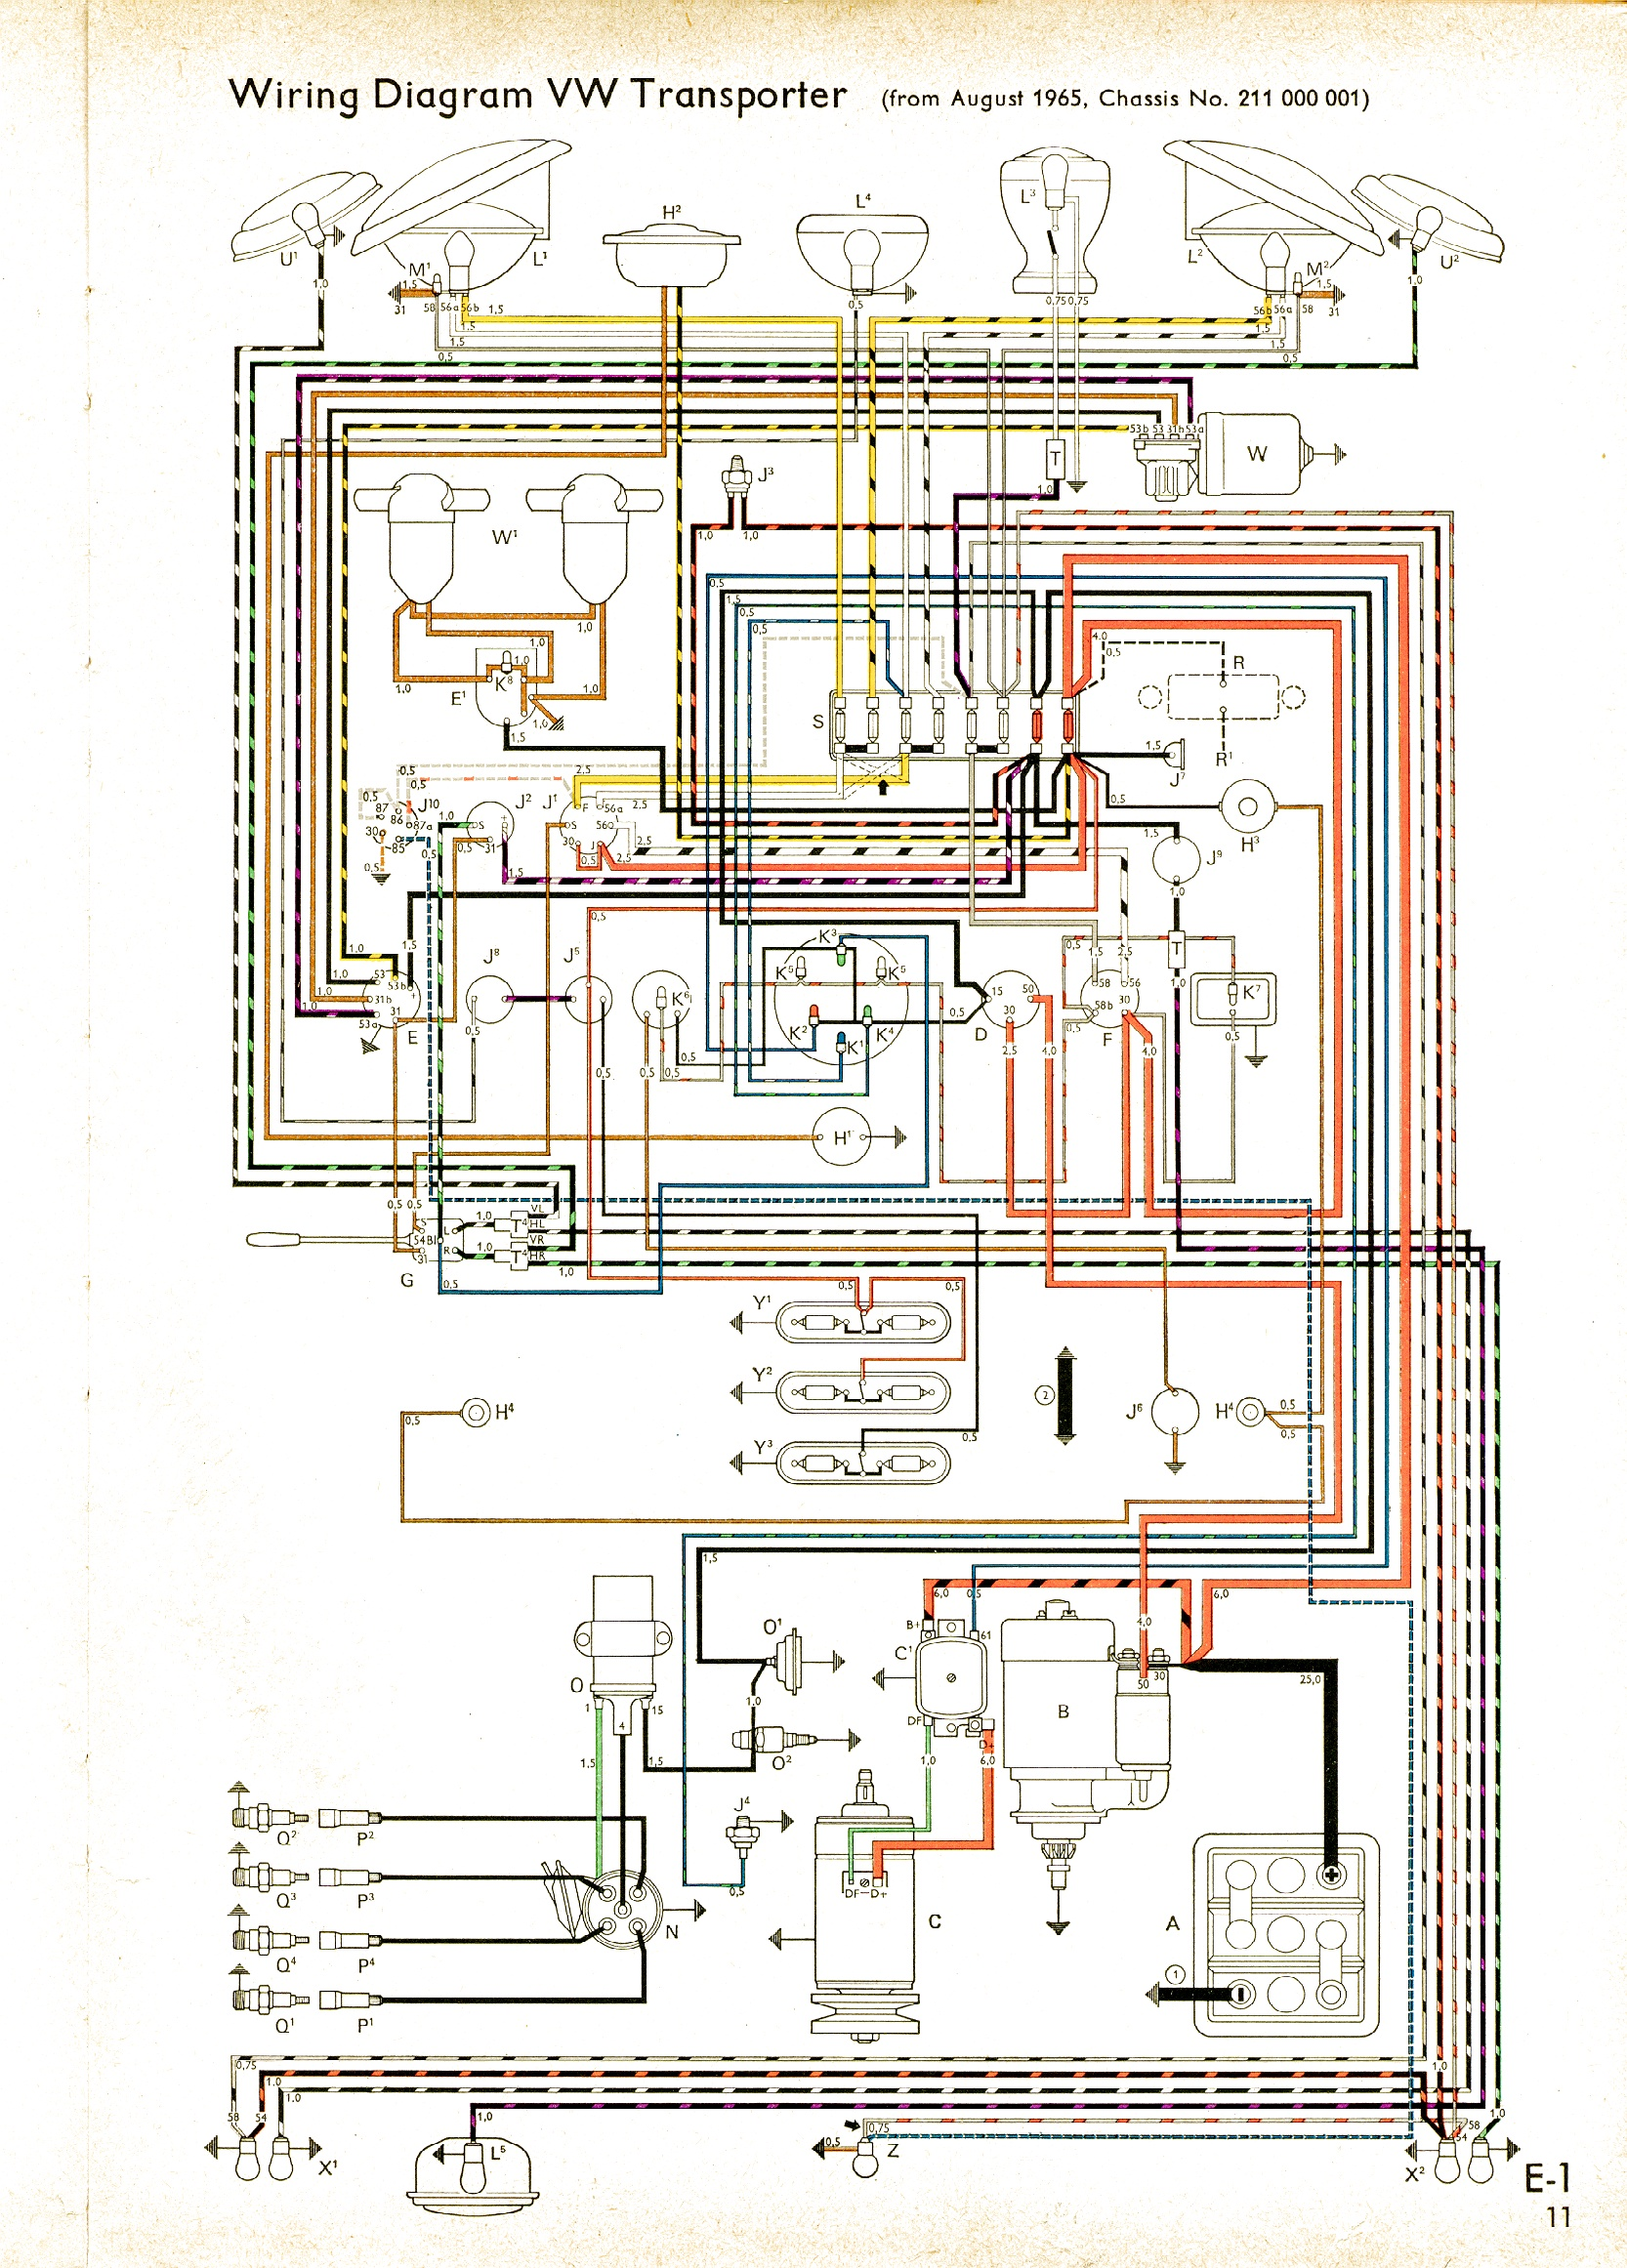 1967 vw beetle wiring diagram RIDAwNe 1967 vw bug wiring diagram on 1967 download wirning diagrams 1970 vw bug wiring diagram at soozxer.org